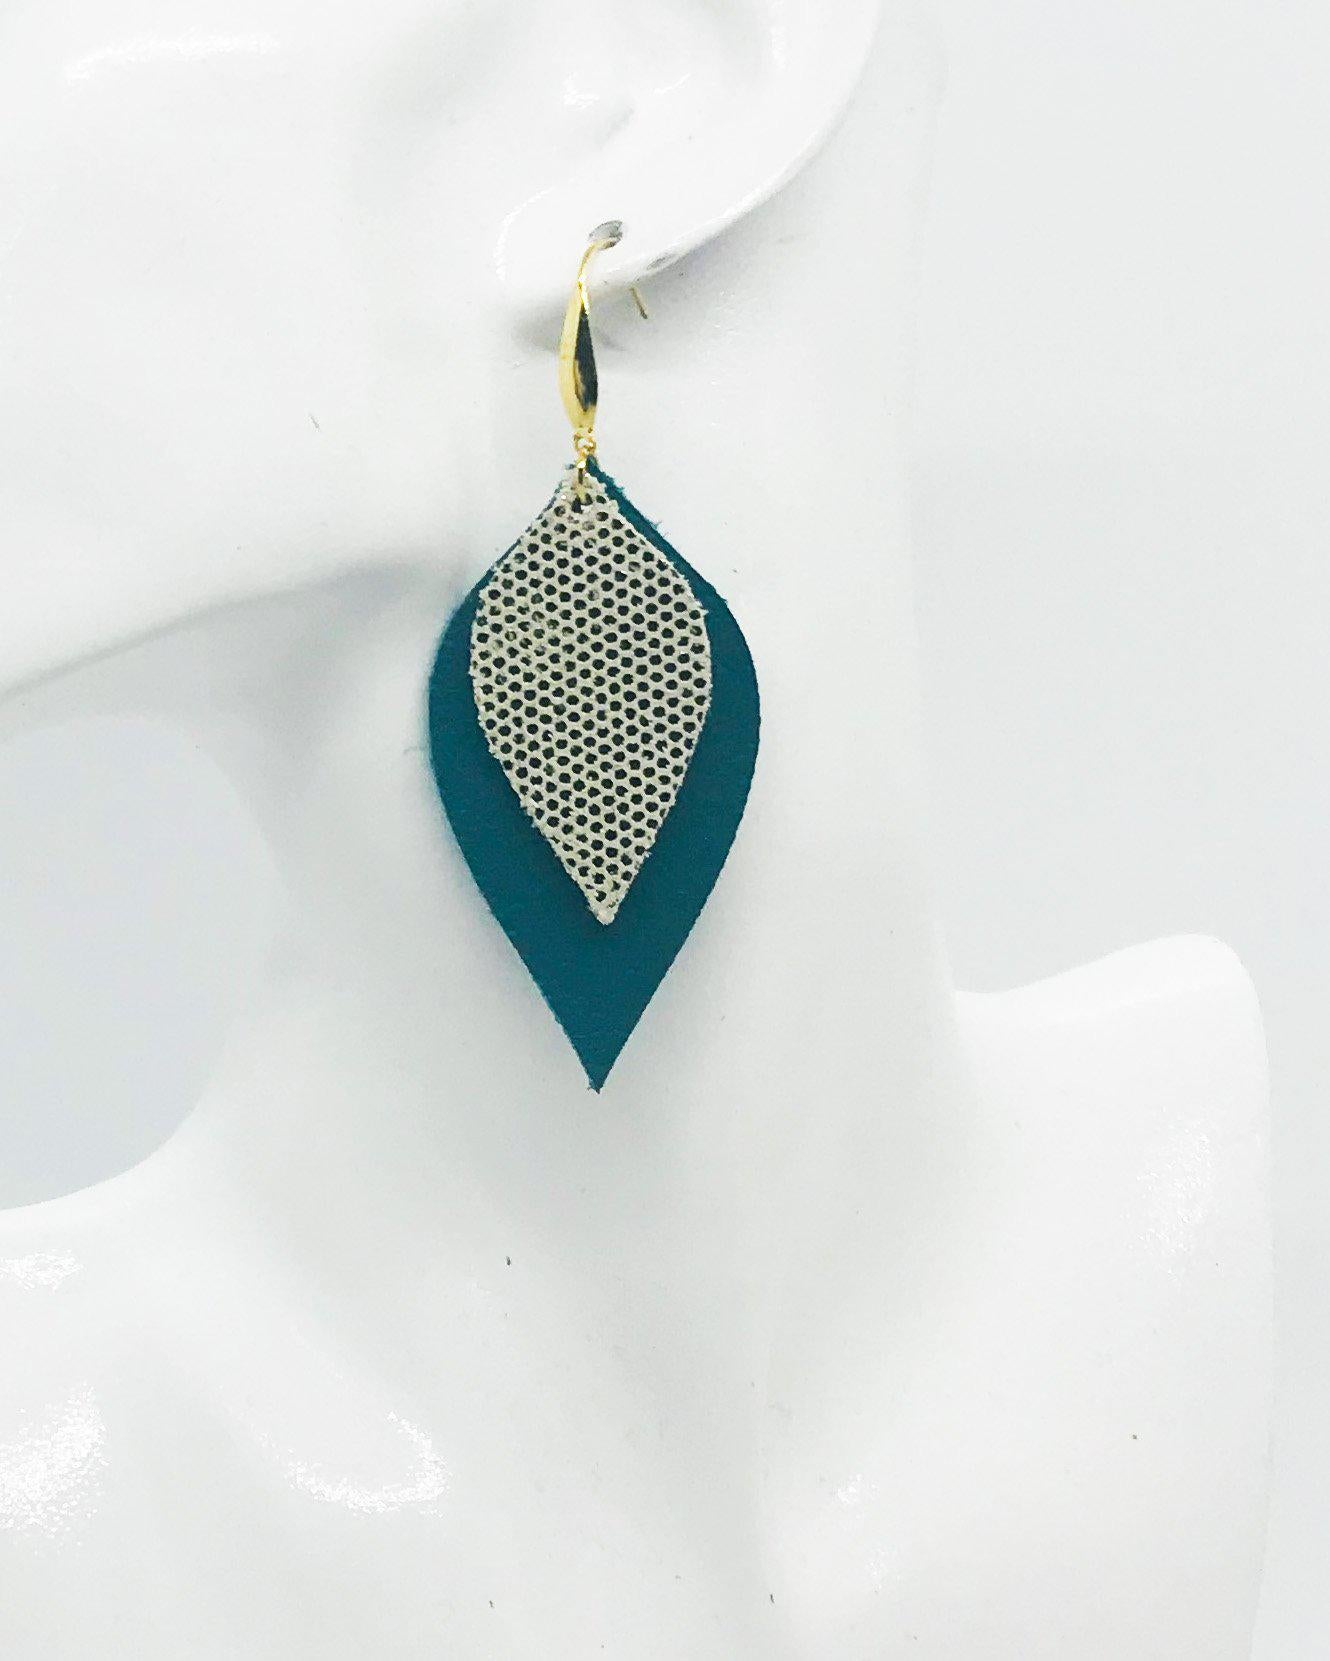 Turquoise and Golden Metallic Leather Earrings - E19-817